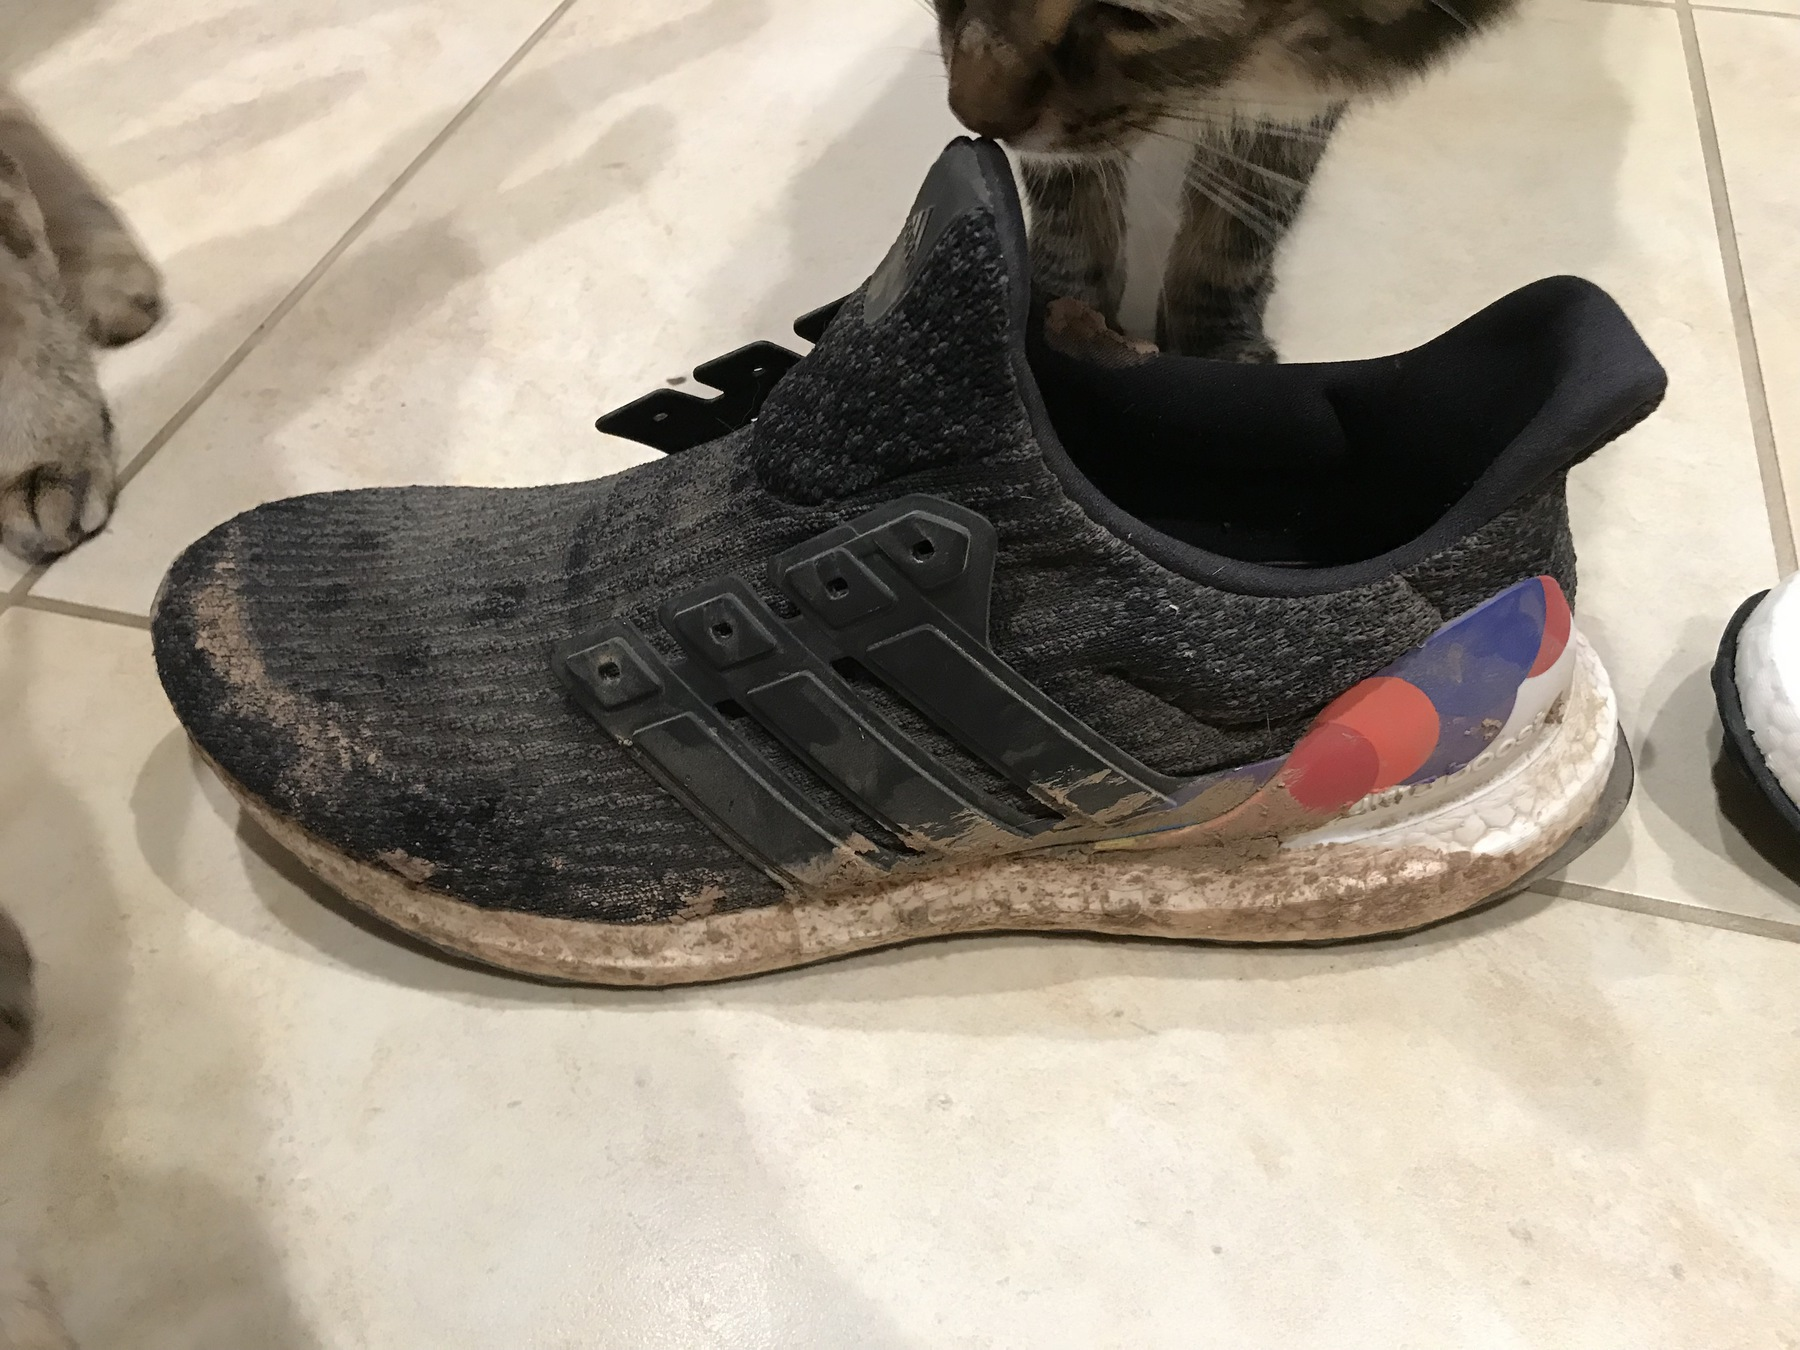 Boost dirty